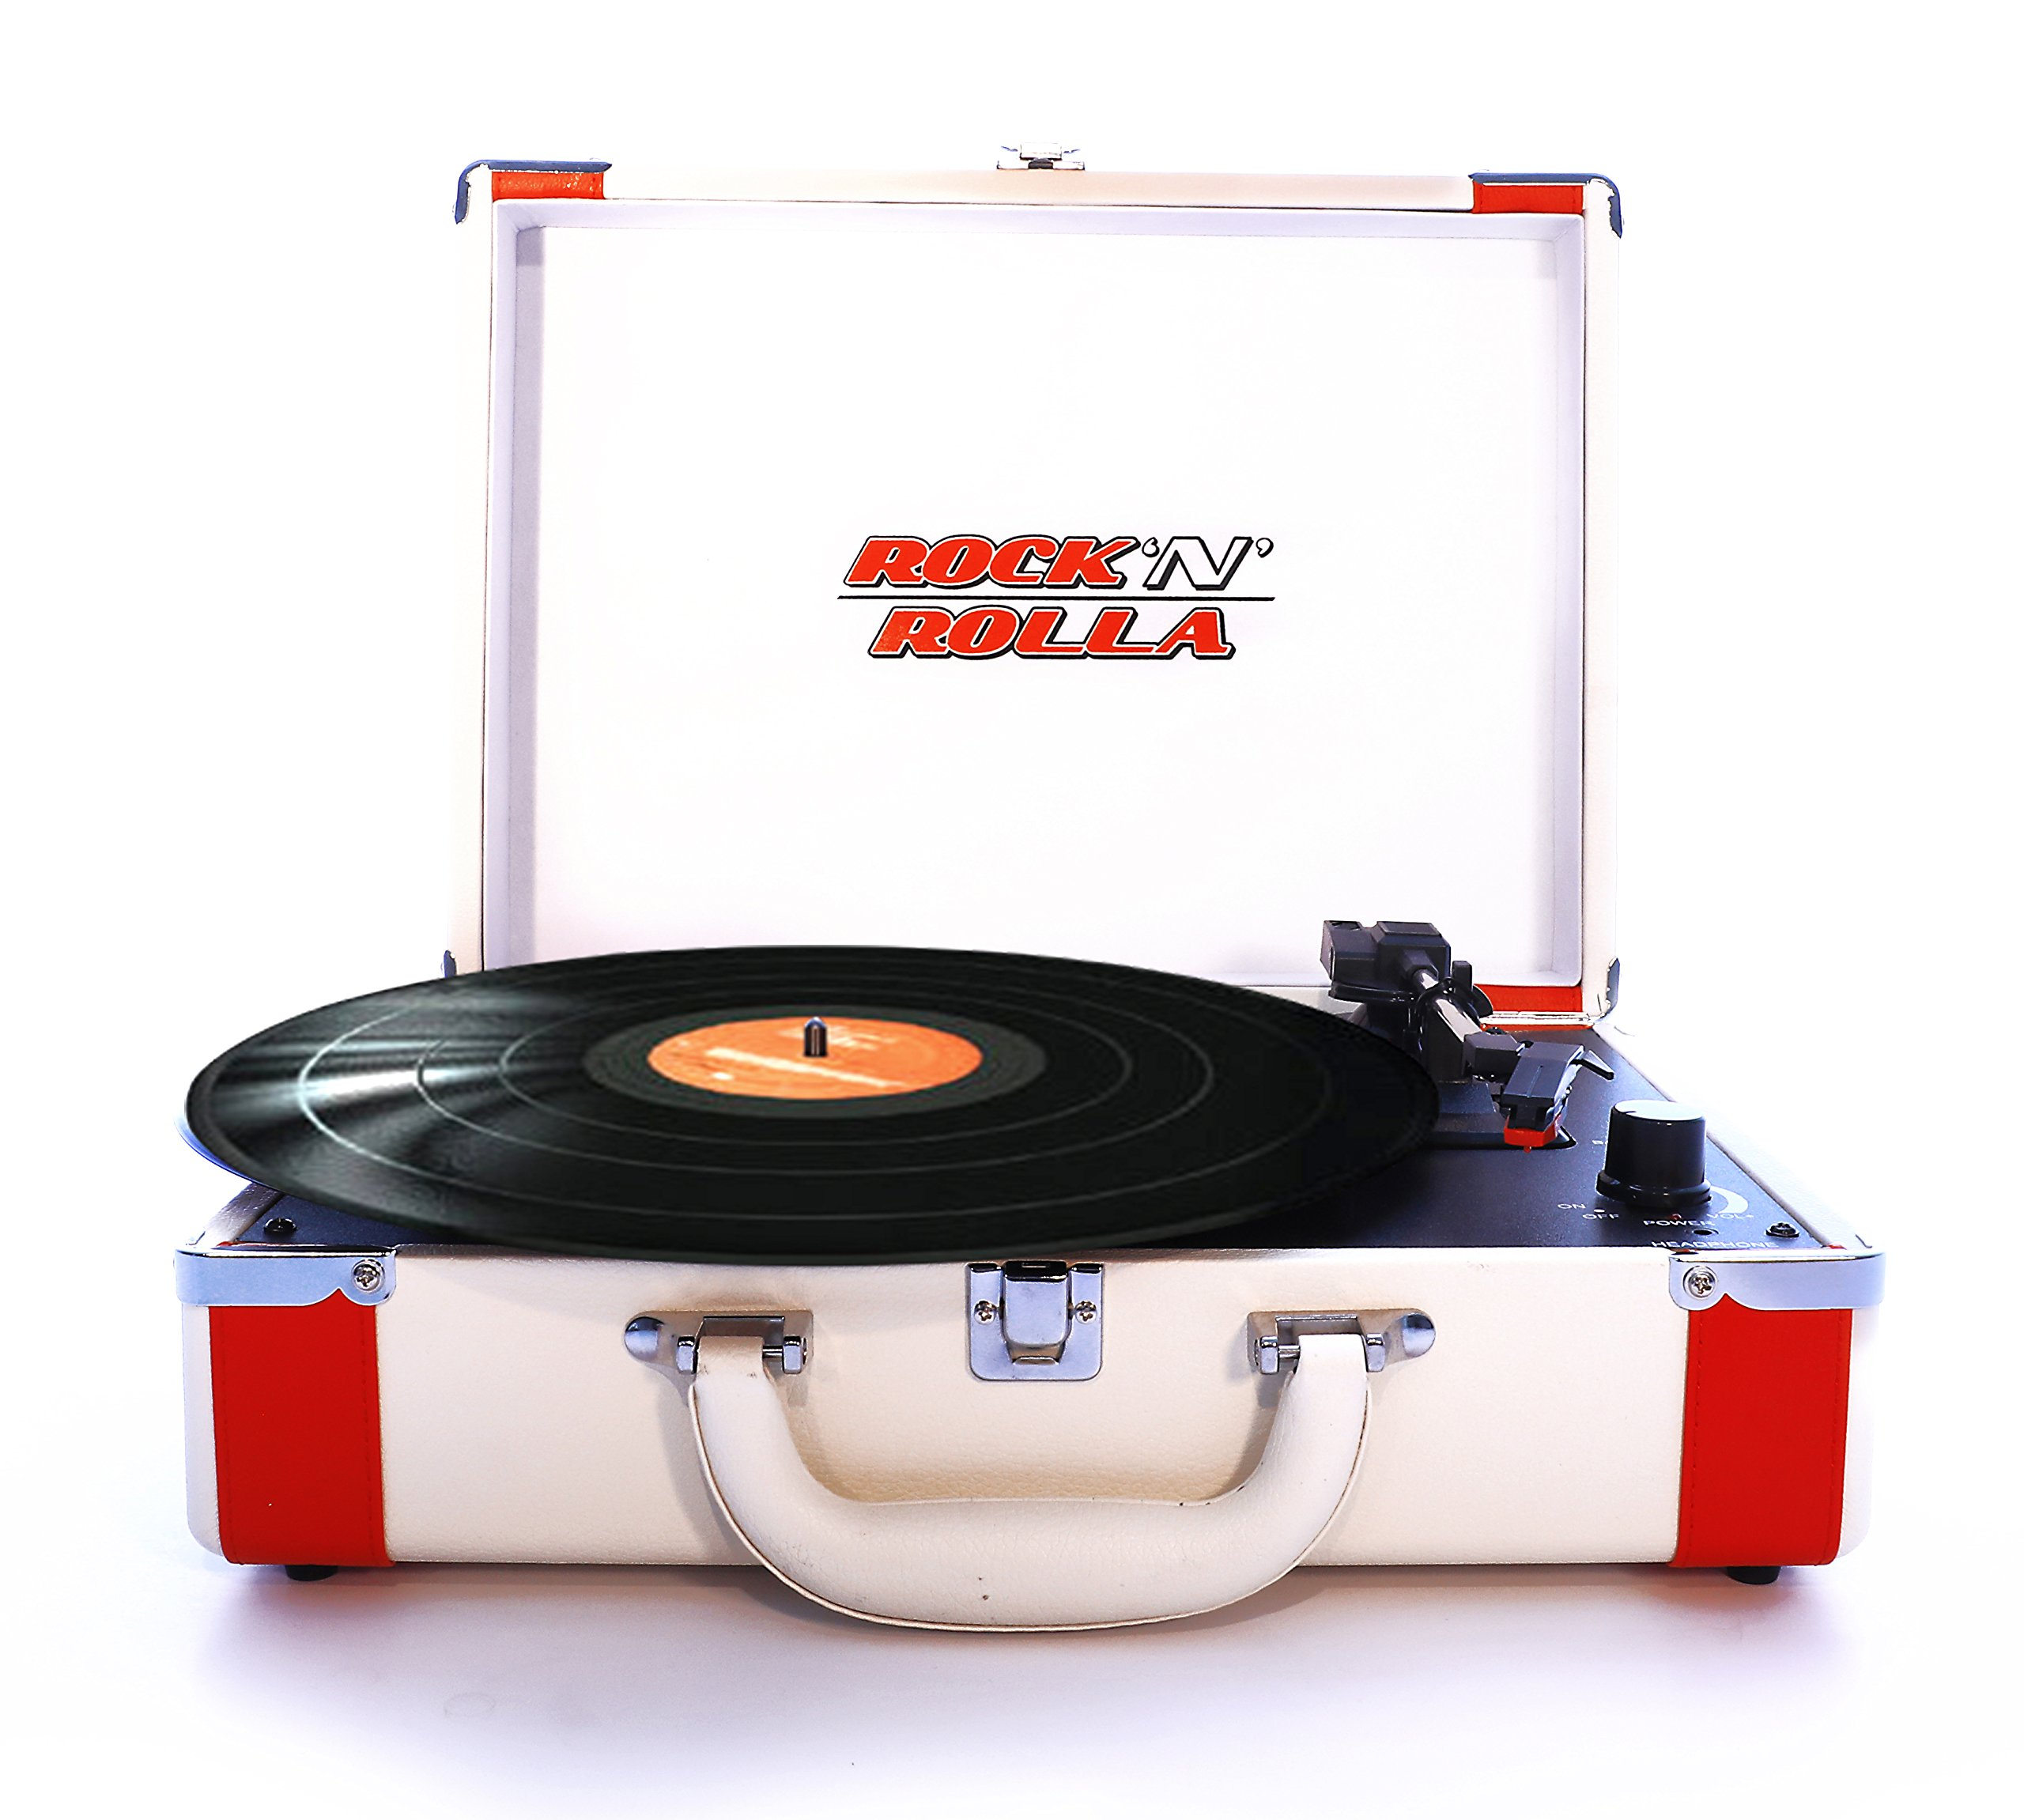 Rock 'N' Rolla Premium - Portable Bluetooth USB Vinyl Record Player Turntable - White/Red